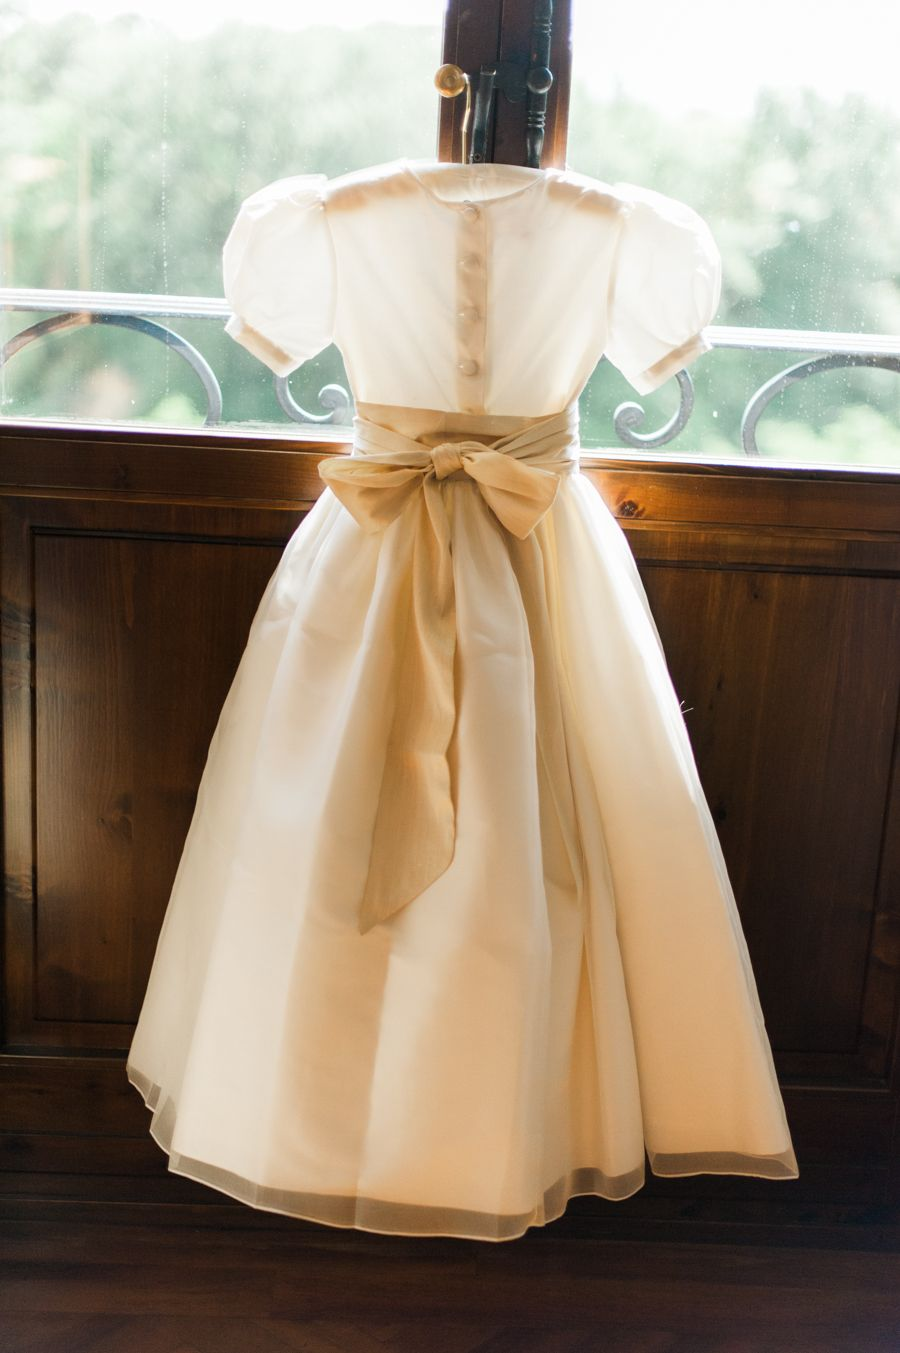 Stunning flower girl dress with the cutest bow little bevan